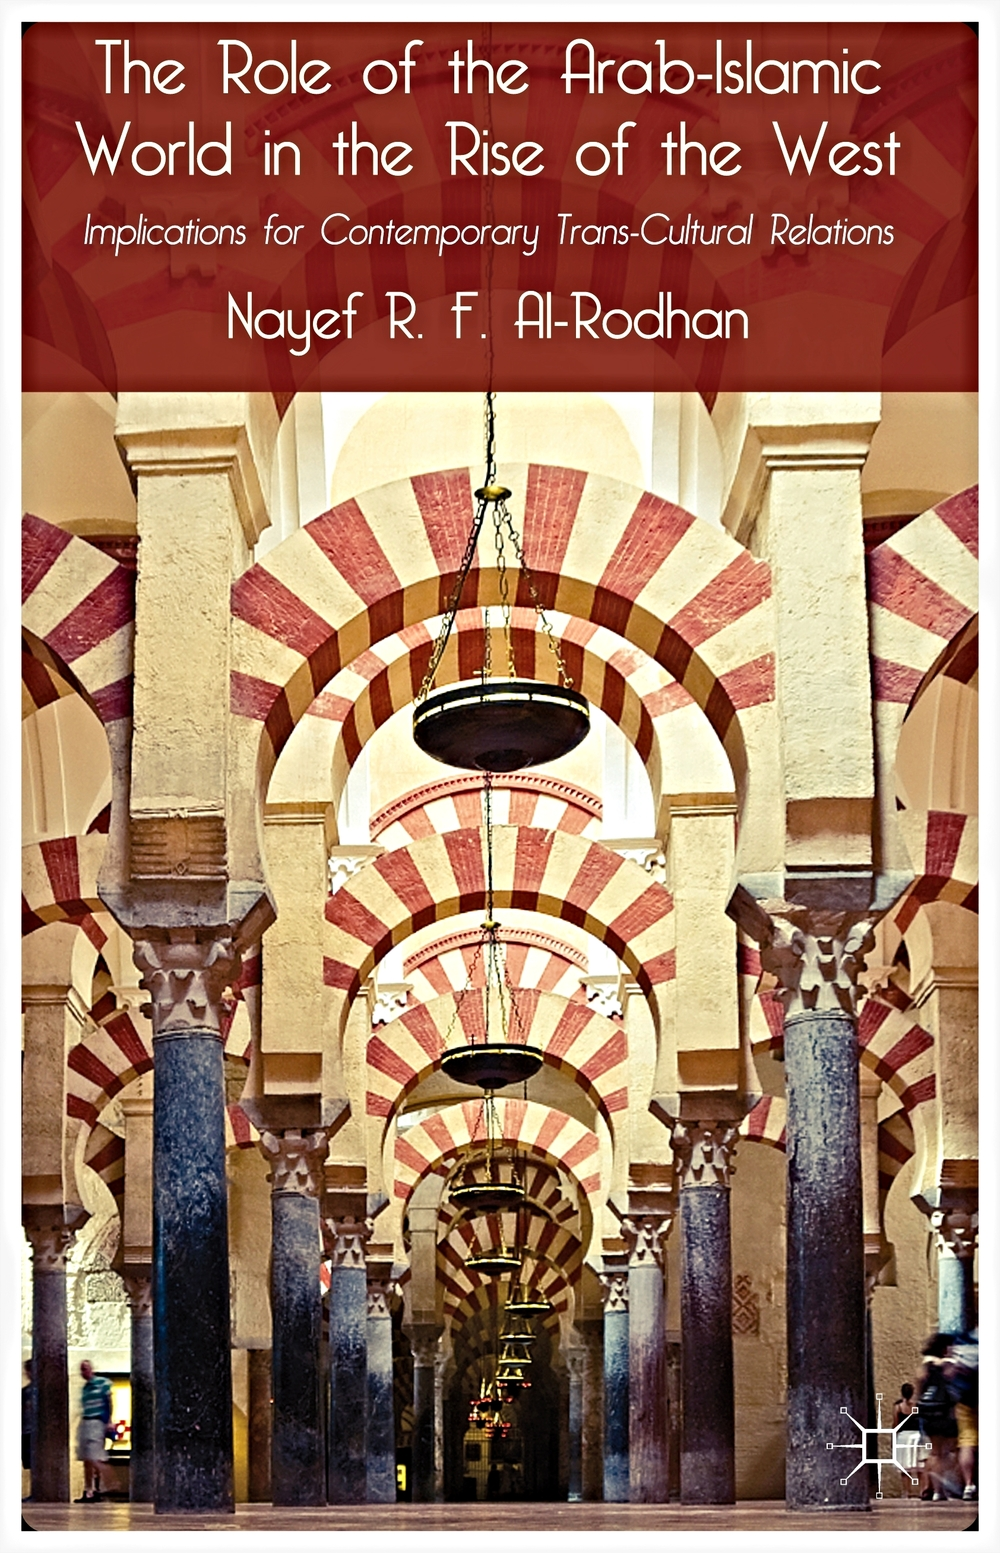 Copy of THE ROLE OF THE ARAB-ISLAMIC WORLD IN THE RISE OF THE WEST: Implications for Contemporary Trans-Cultural Relations (Palgrave MacMillan)